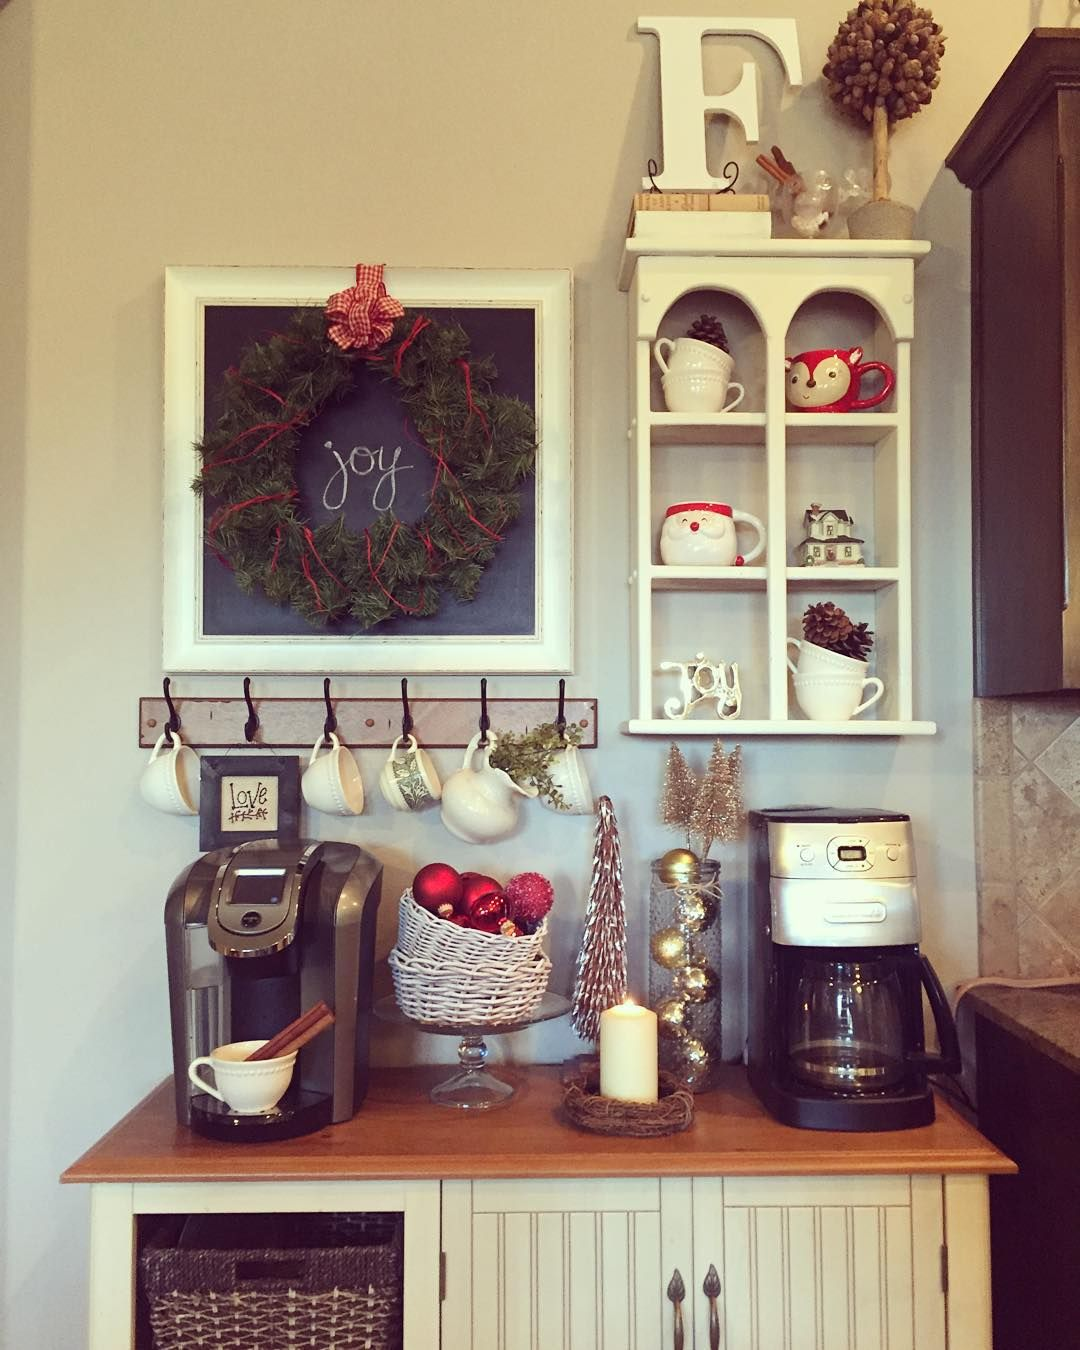 Christmas coffee station | For the Coffee Station in 2019 ... on s'mores buffet ideas, brown kitchen cabinets ideas, home coffee station ideas, kitchen library ideas, s'more dessert ideas, bar top kitchen ideas, kitchen alcohol bar ideas, kitchen buffet ideas, small bar ideas, kitchen cafe ideas, cocoa bar ideas, kitchen breakfast bar ideas, coffee house decor ideas, kitchen garden ideas, kitchen bistro ideas, kitchen utensil drawer organizers, kitchen wine ideas, kitchen gifts ideas, kitchen lounge ideas, building your own bar ideas,